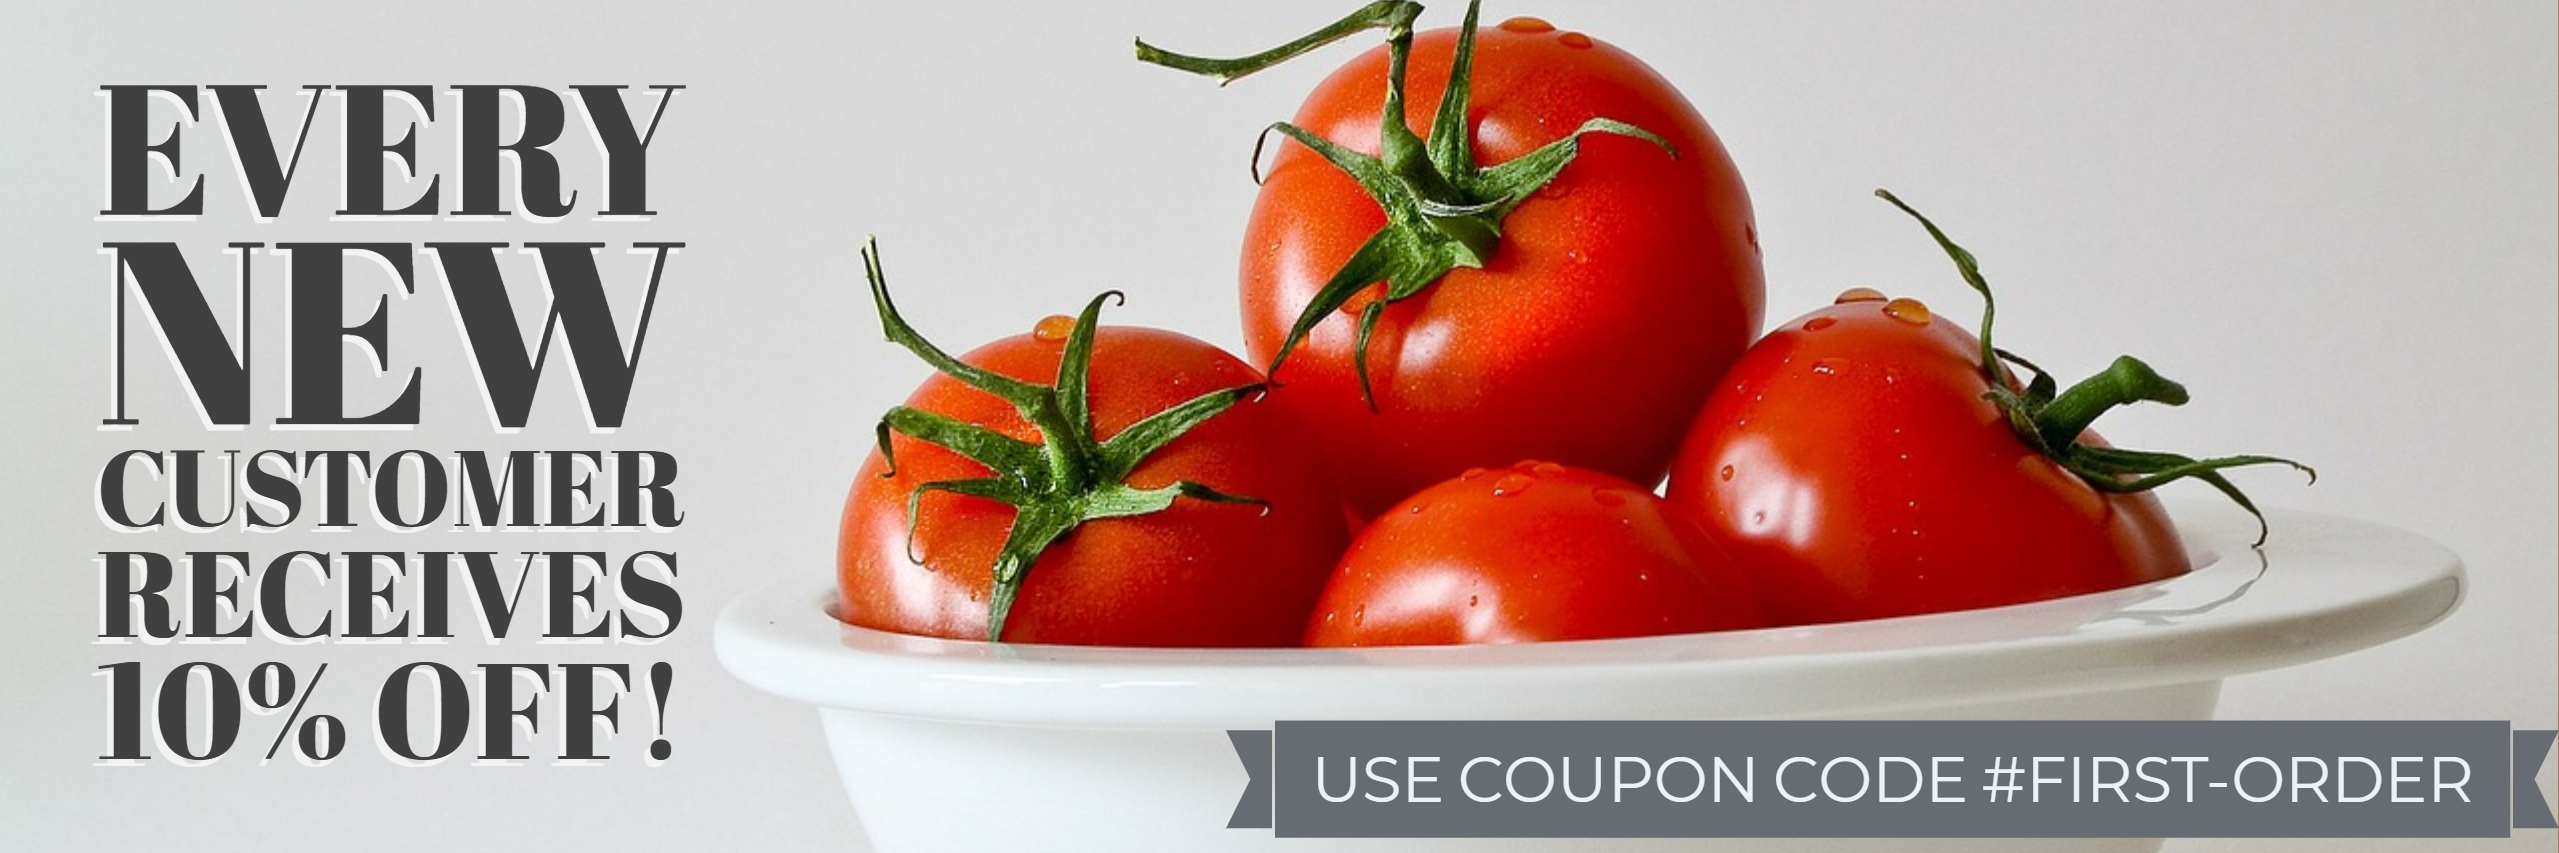 Every New Customer Receives 10% Off - Use Coupon Code #FIRST-ORDER